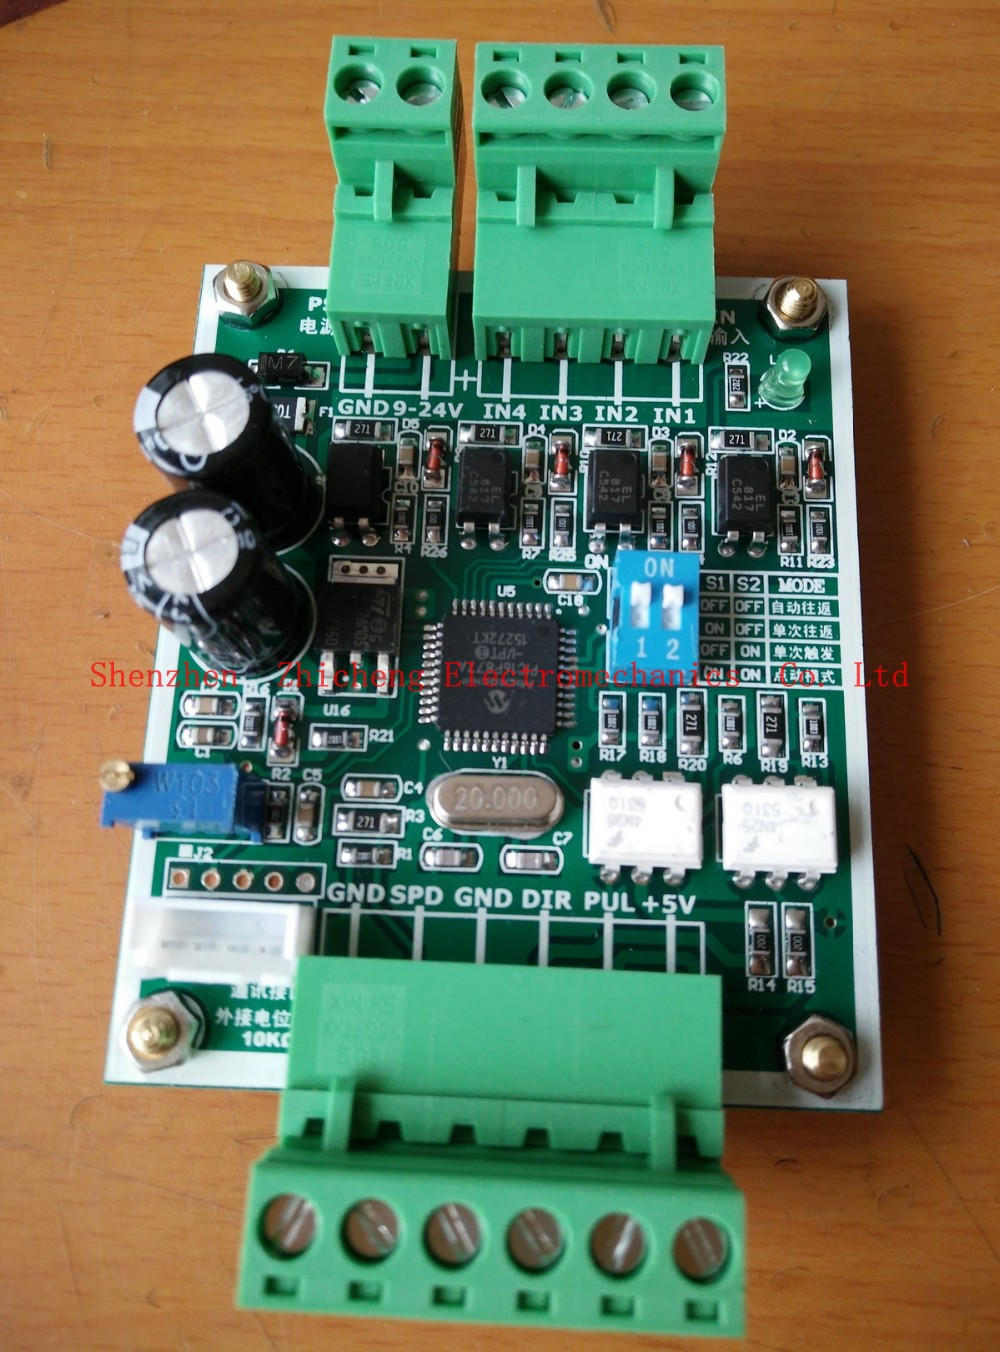 Stepper motor controller for single-axis pulse generator stepper motor driver of the reciprocating movement of the fixed length